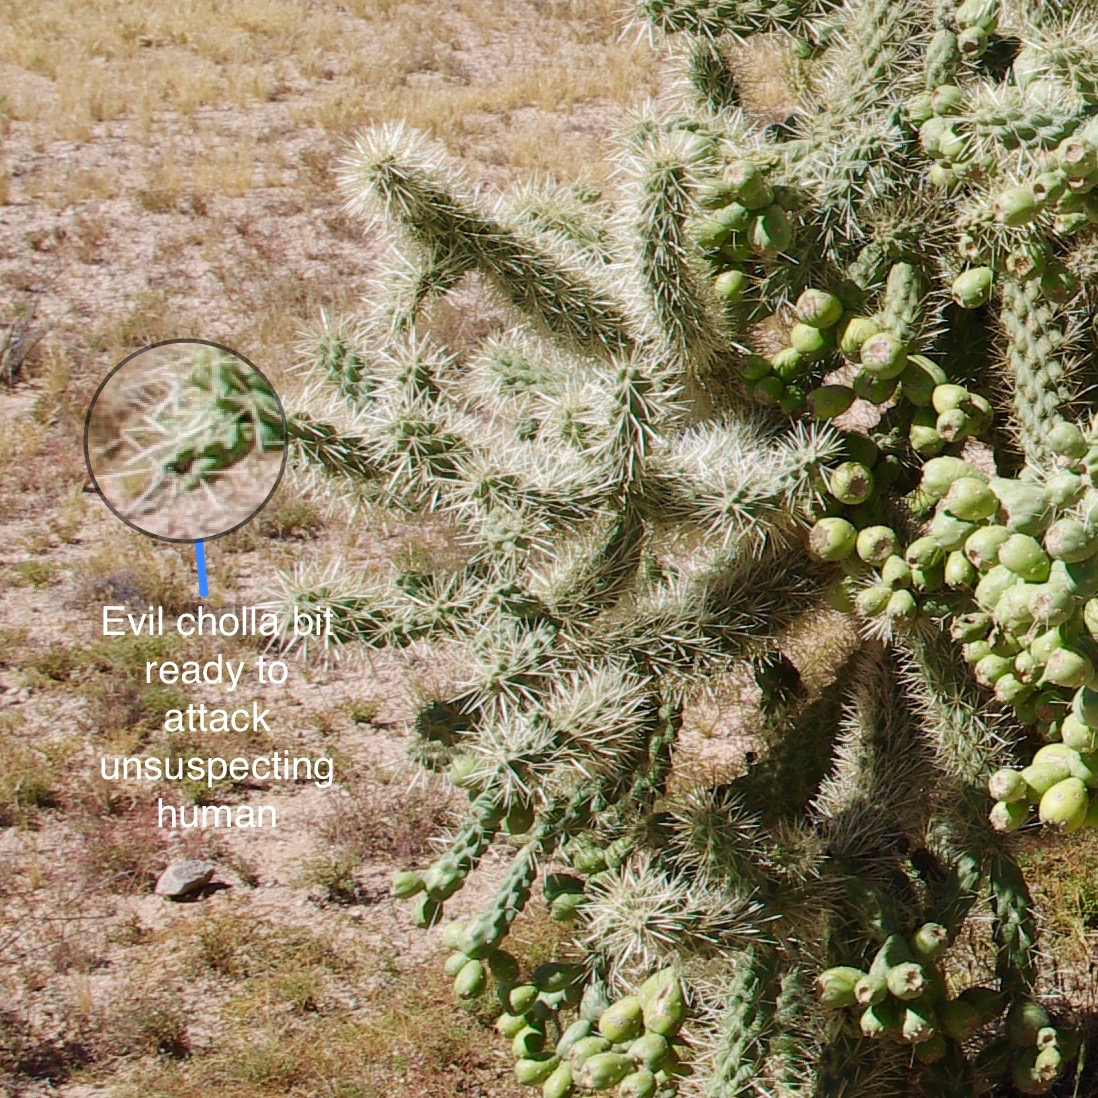 I did not take pictures of the cholla bits that actually attacked us because by the time I got rid of them, I was terrified of getting close enough to photograph them. Here is an example of what they look like, though.